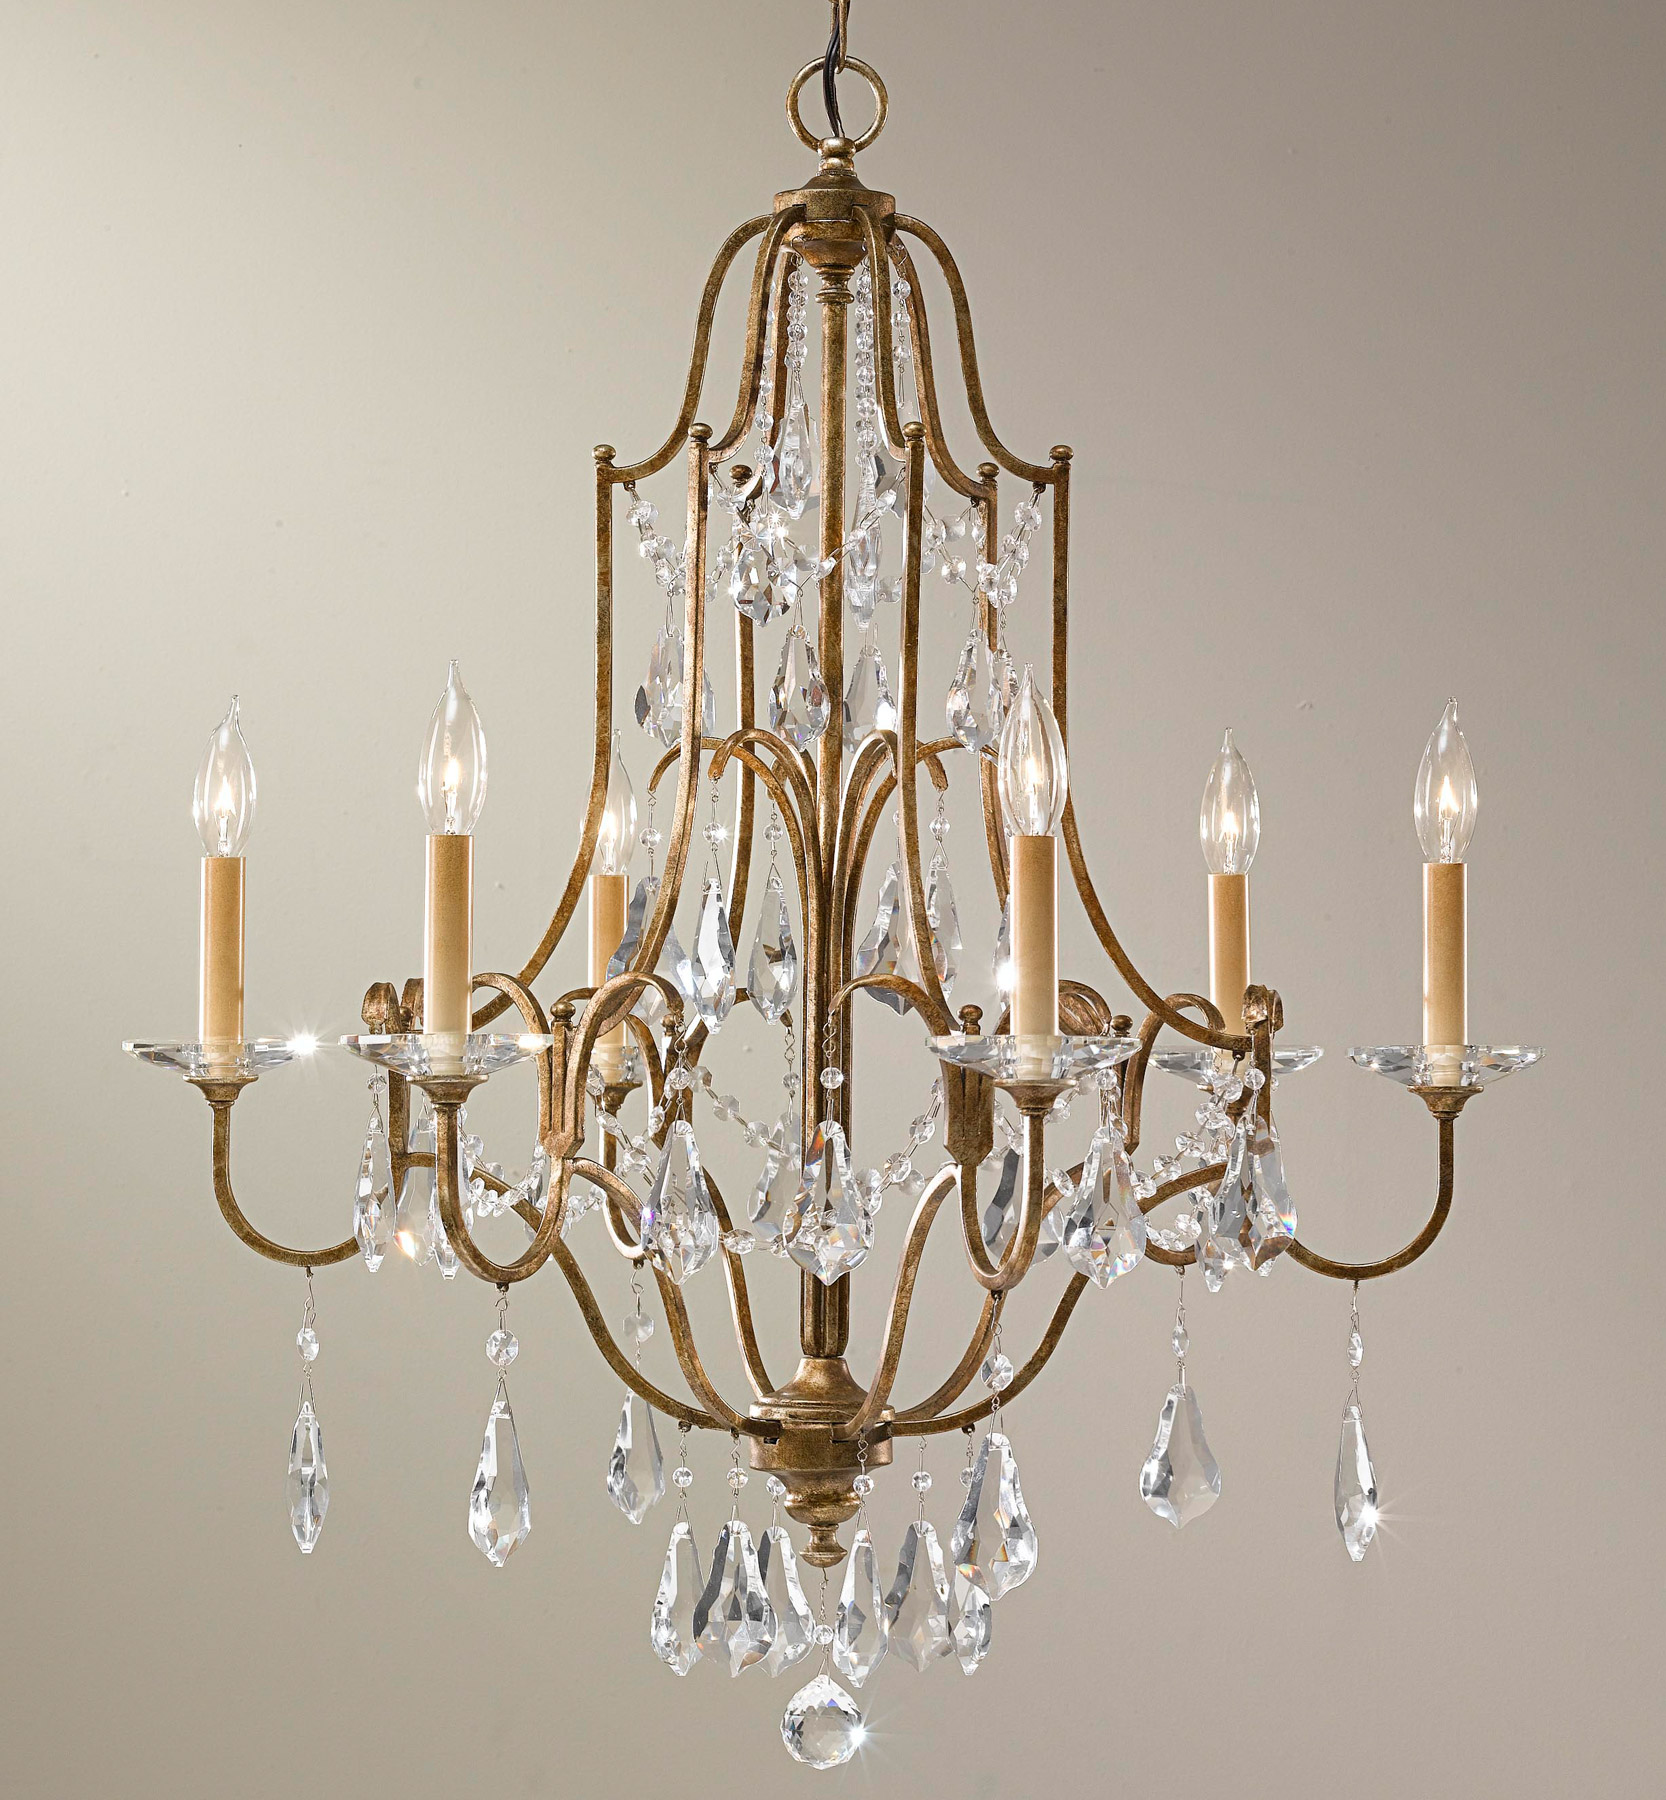 Murray feiss f2478 6obz crystal valentina six light chandelier - Lighting and chandeliers ...